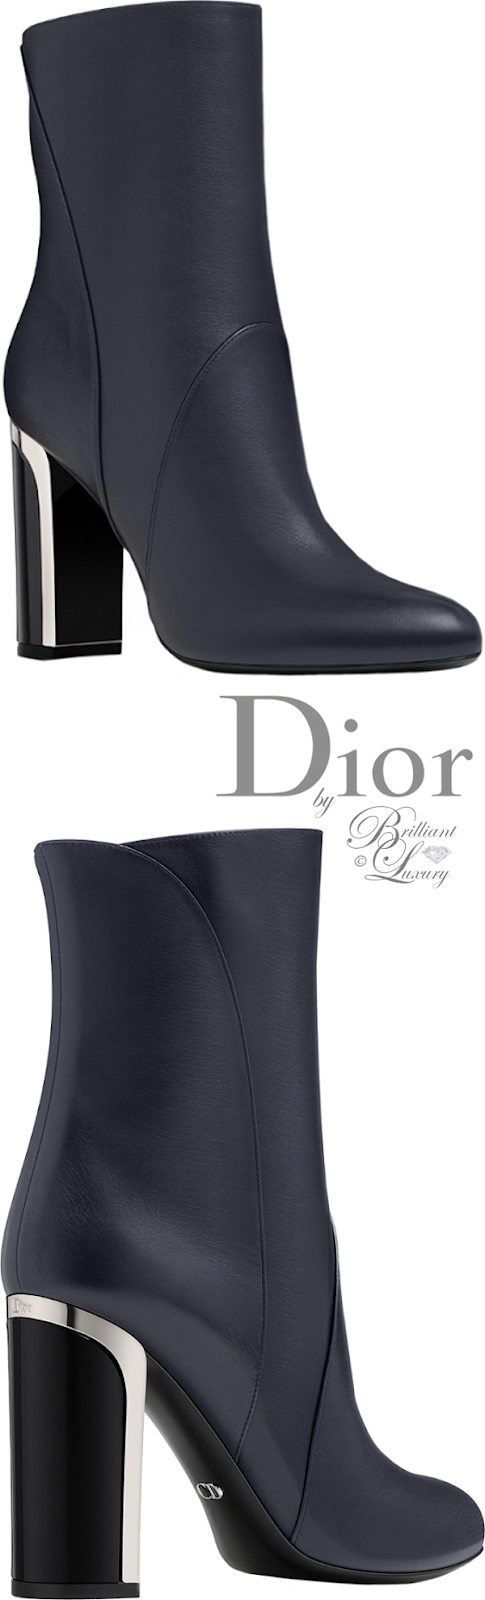 Brilliant Luxury ♦ Dior navy blue calfskin ankle boot